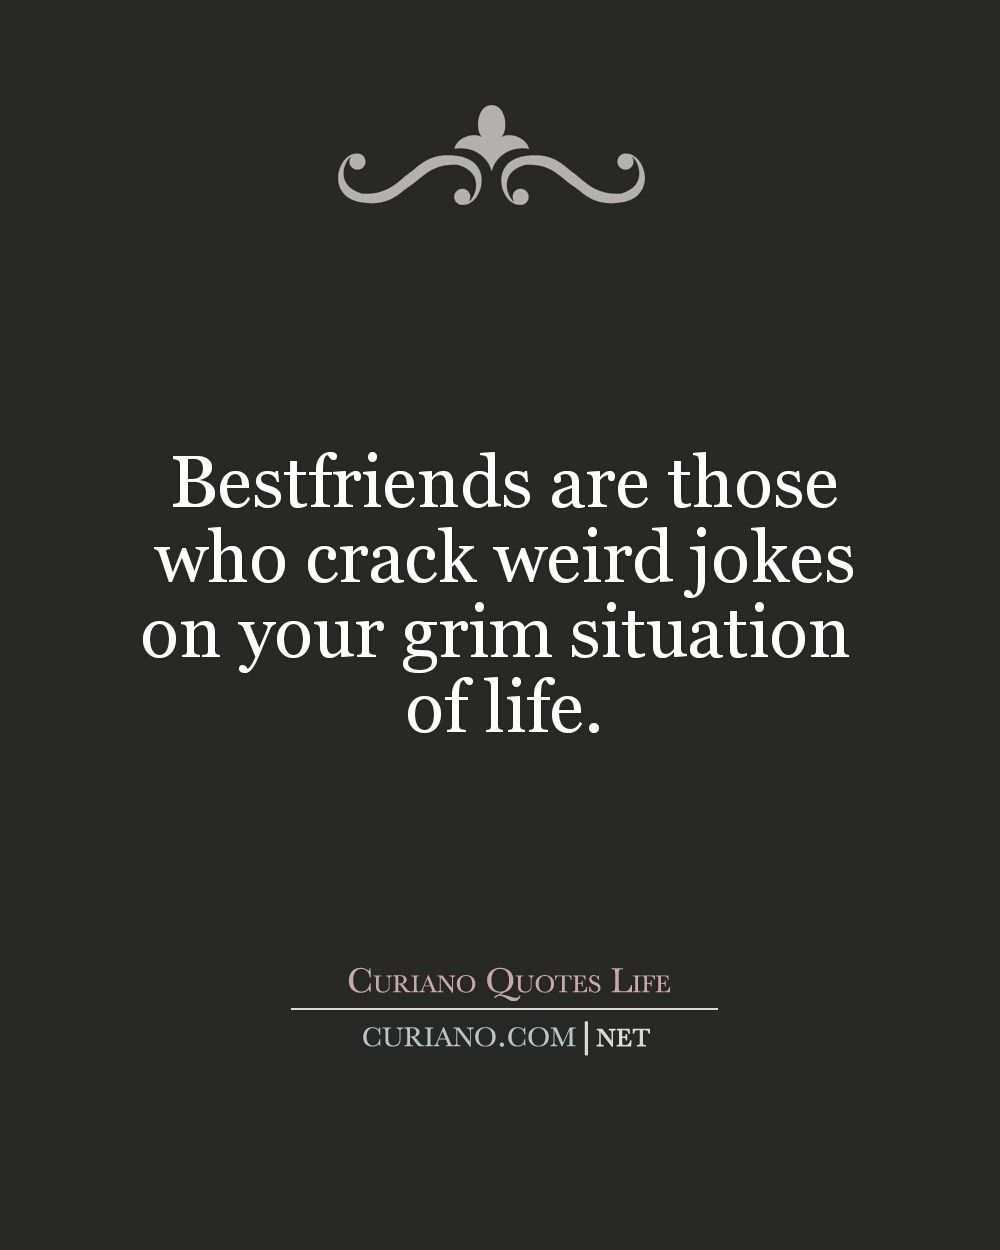 Meaningful Quotes About Life This Blog Curiano Quotes Life Shows Quotes Best Life Quote